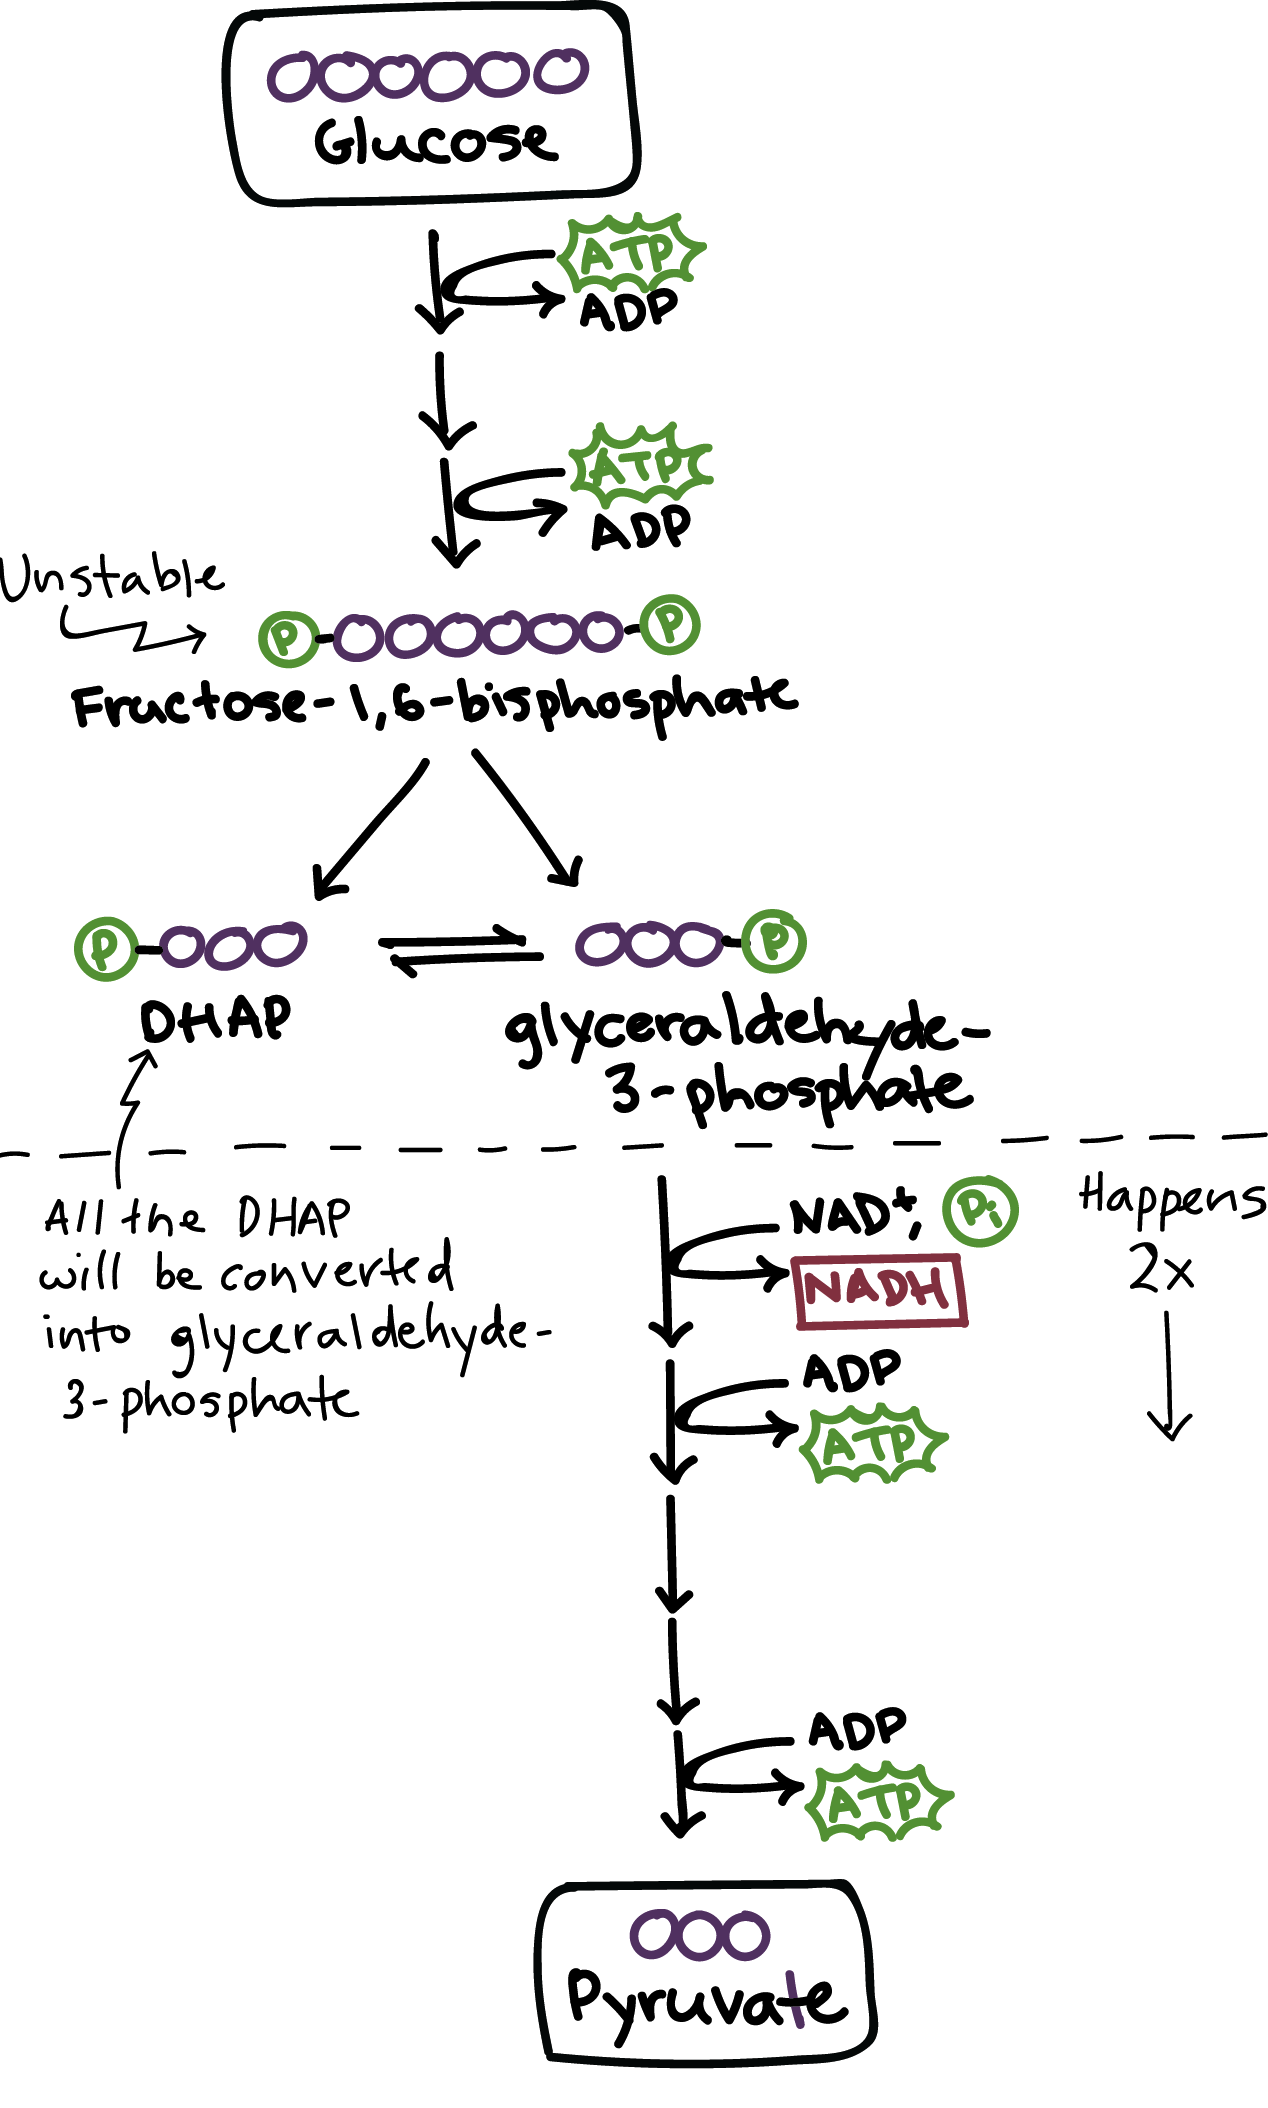 Glycolysis Cellular Respiration Biology Article Khan Academy Simple Plant Cells Diagram Cell Basic Simplified Of Energy Investment Phase Glucose Is First Converted To Fructose